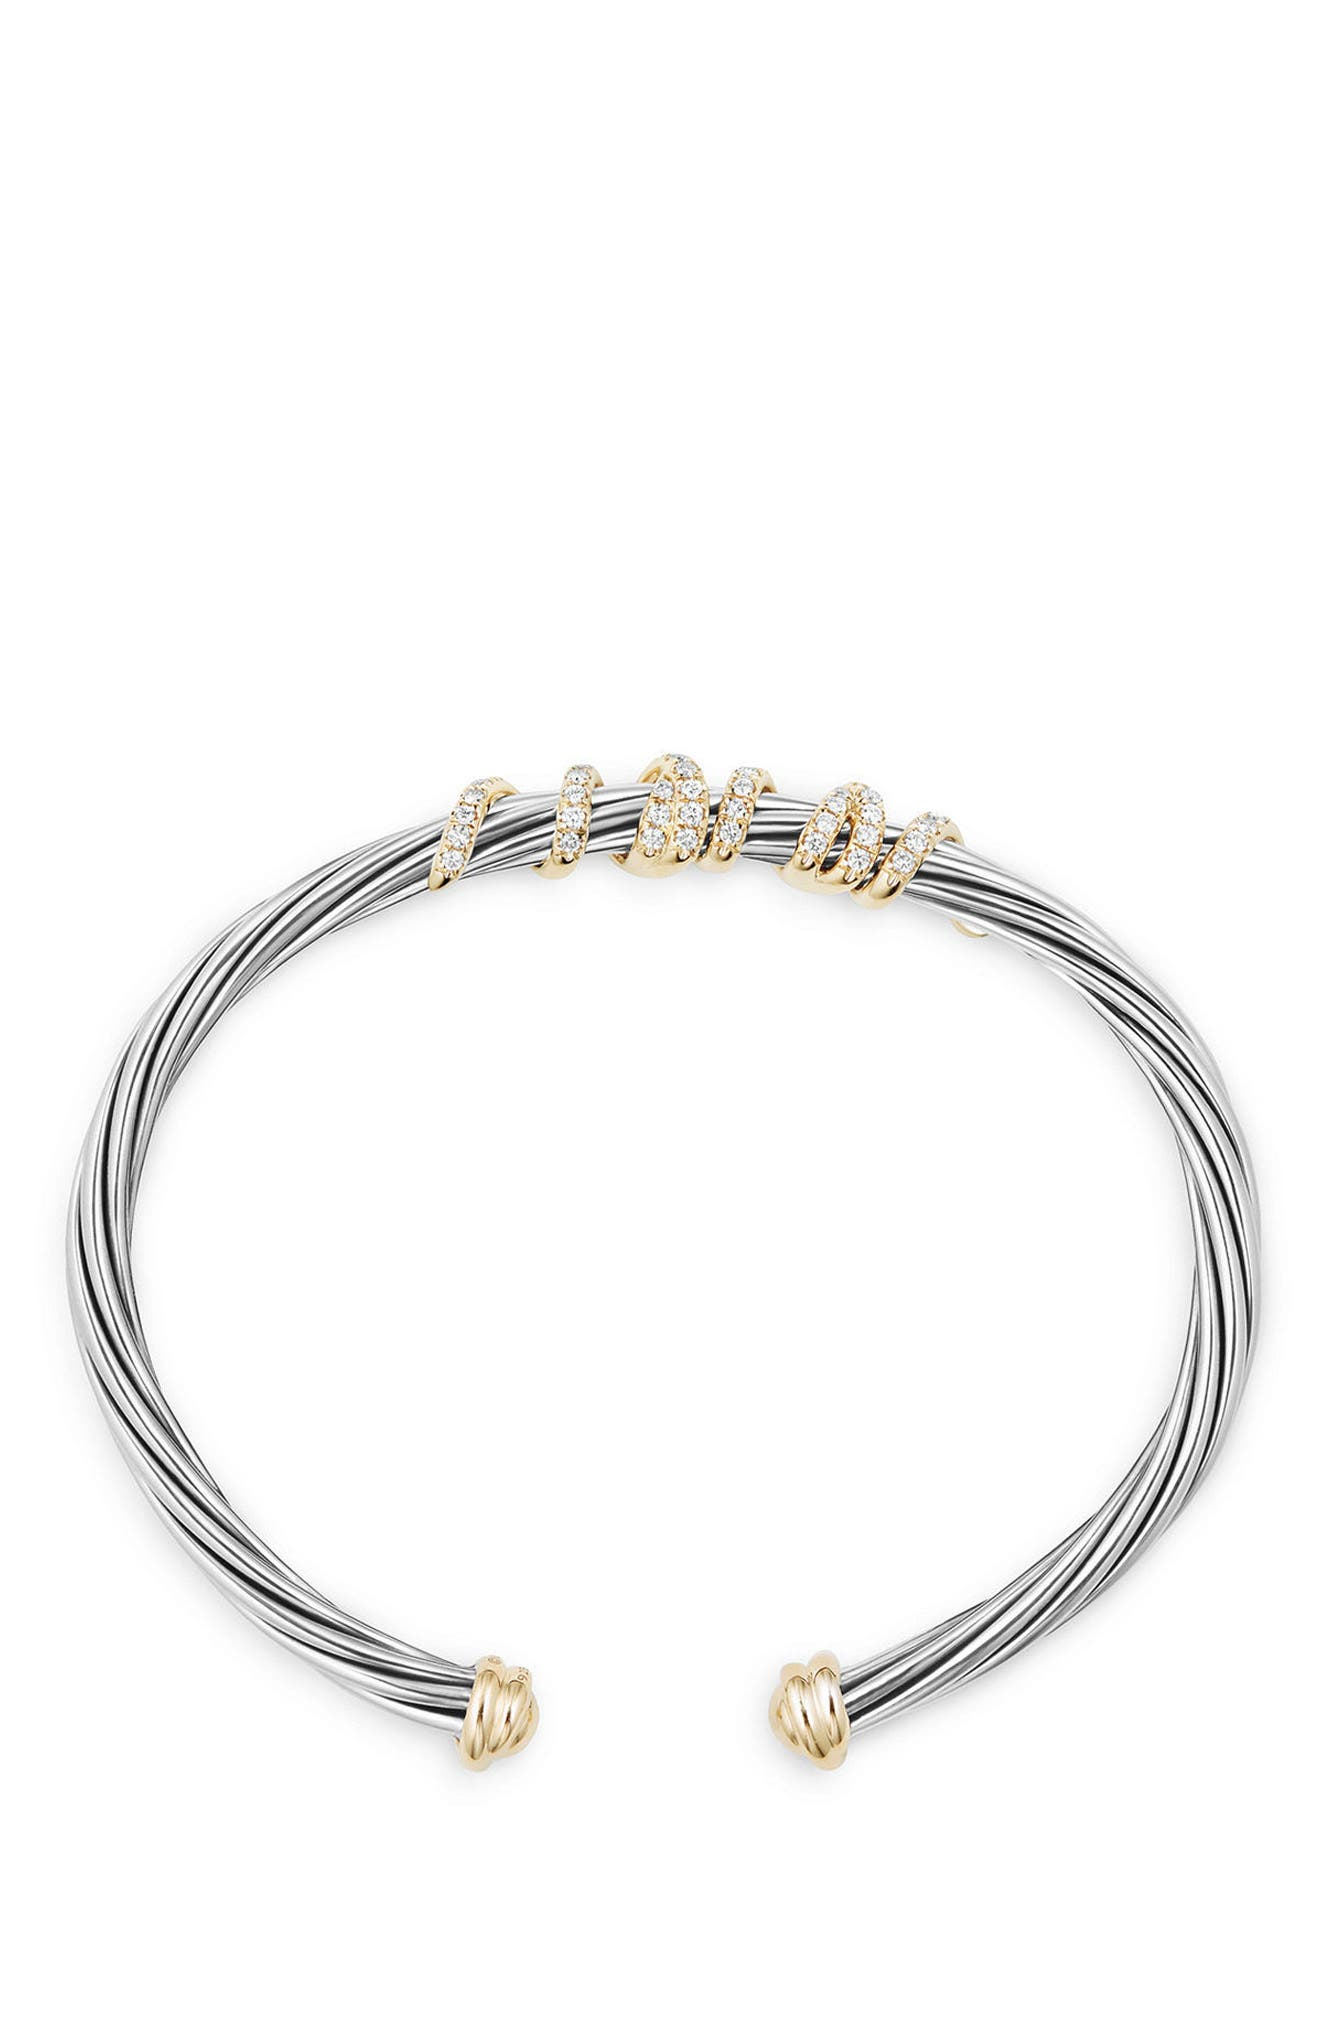 Helena Center Station Bracelet with Diamonds and 18K Gold, 4mm,                             Alternate thumbnail 2, color,                             Silver/ Gold